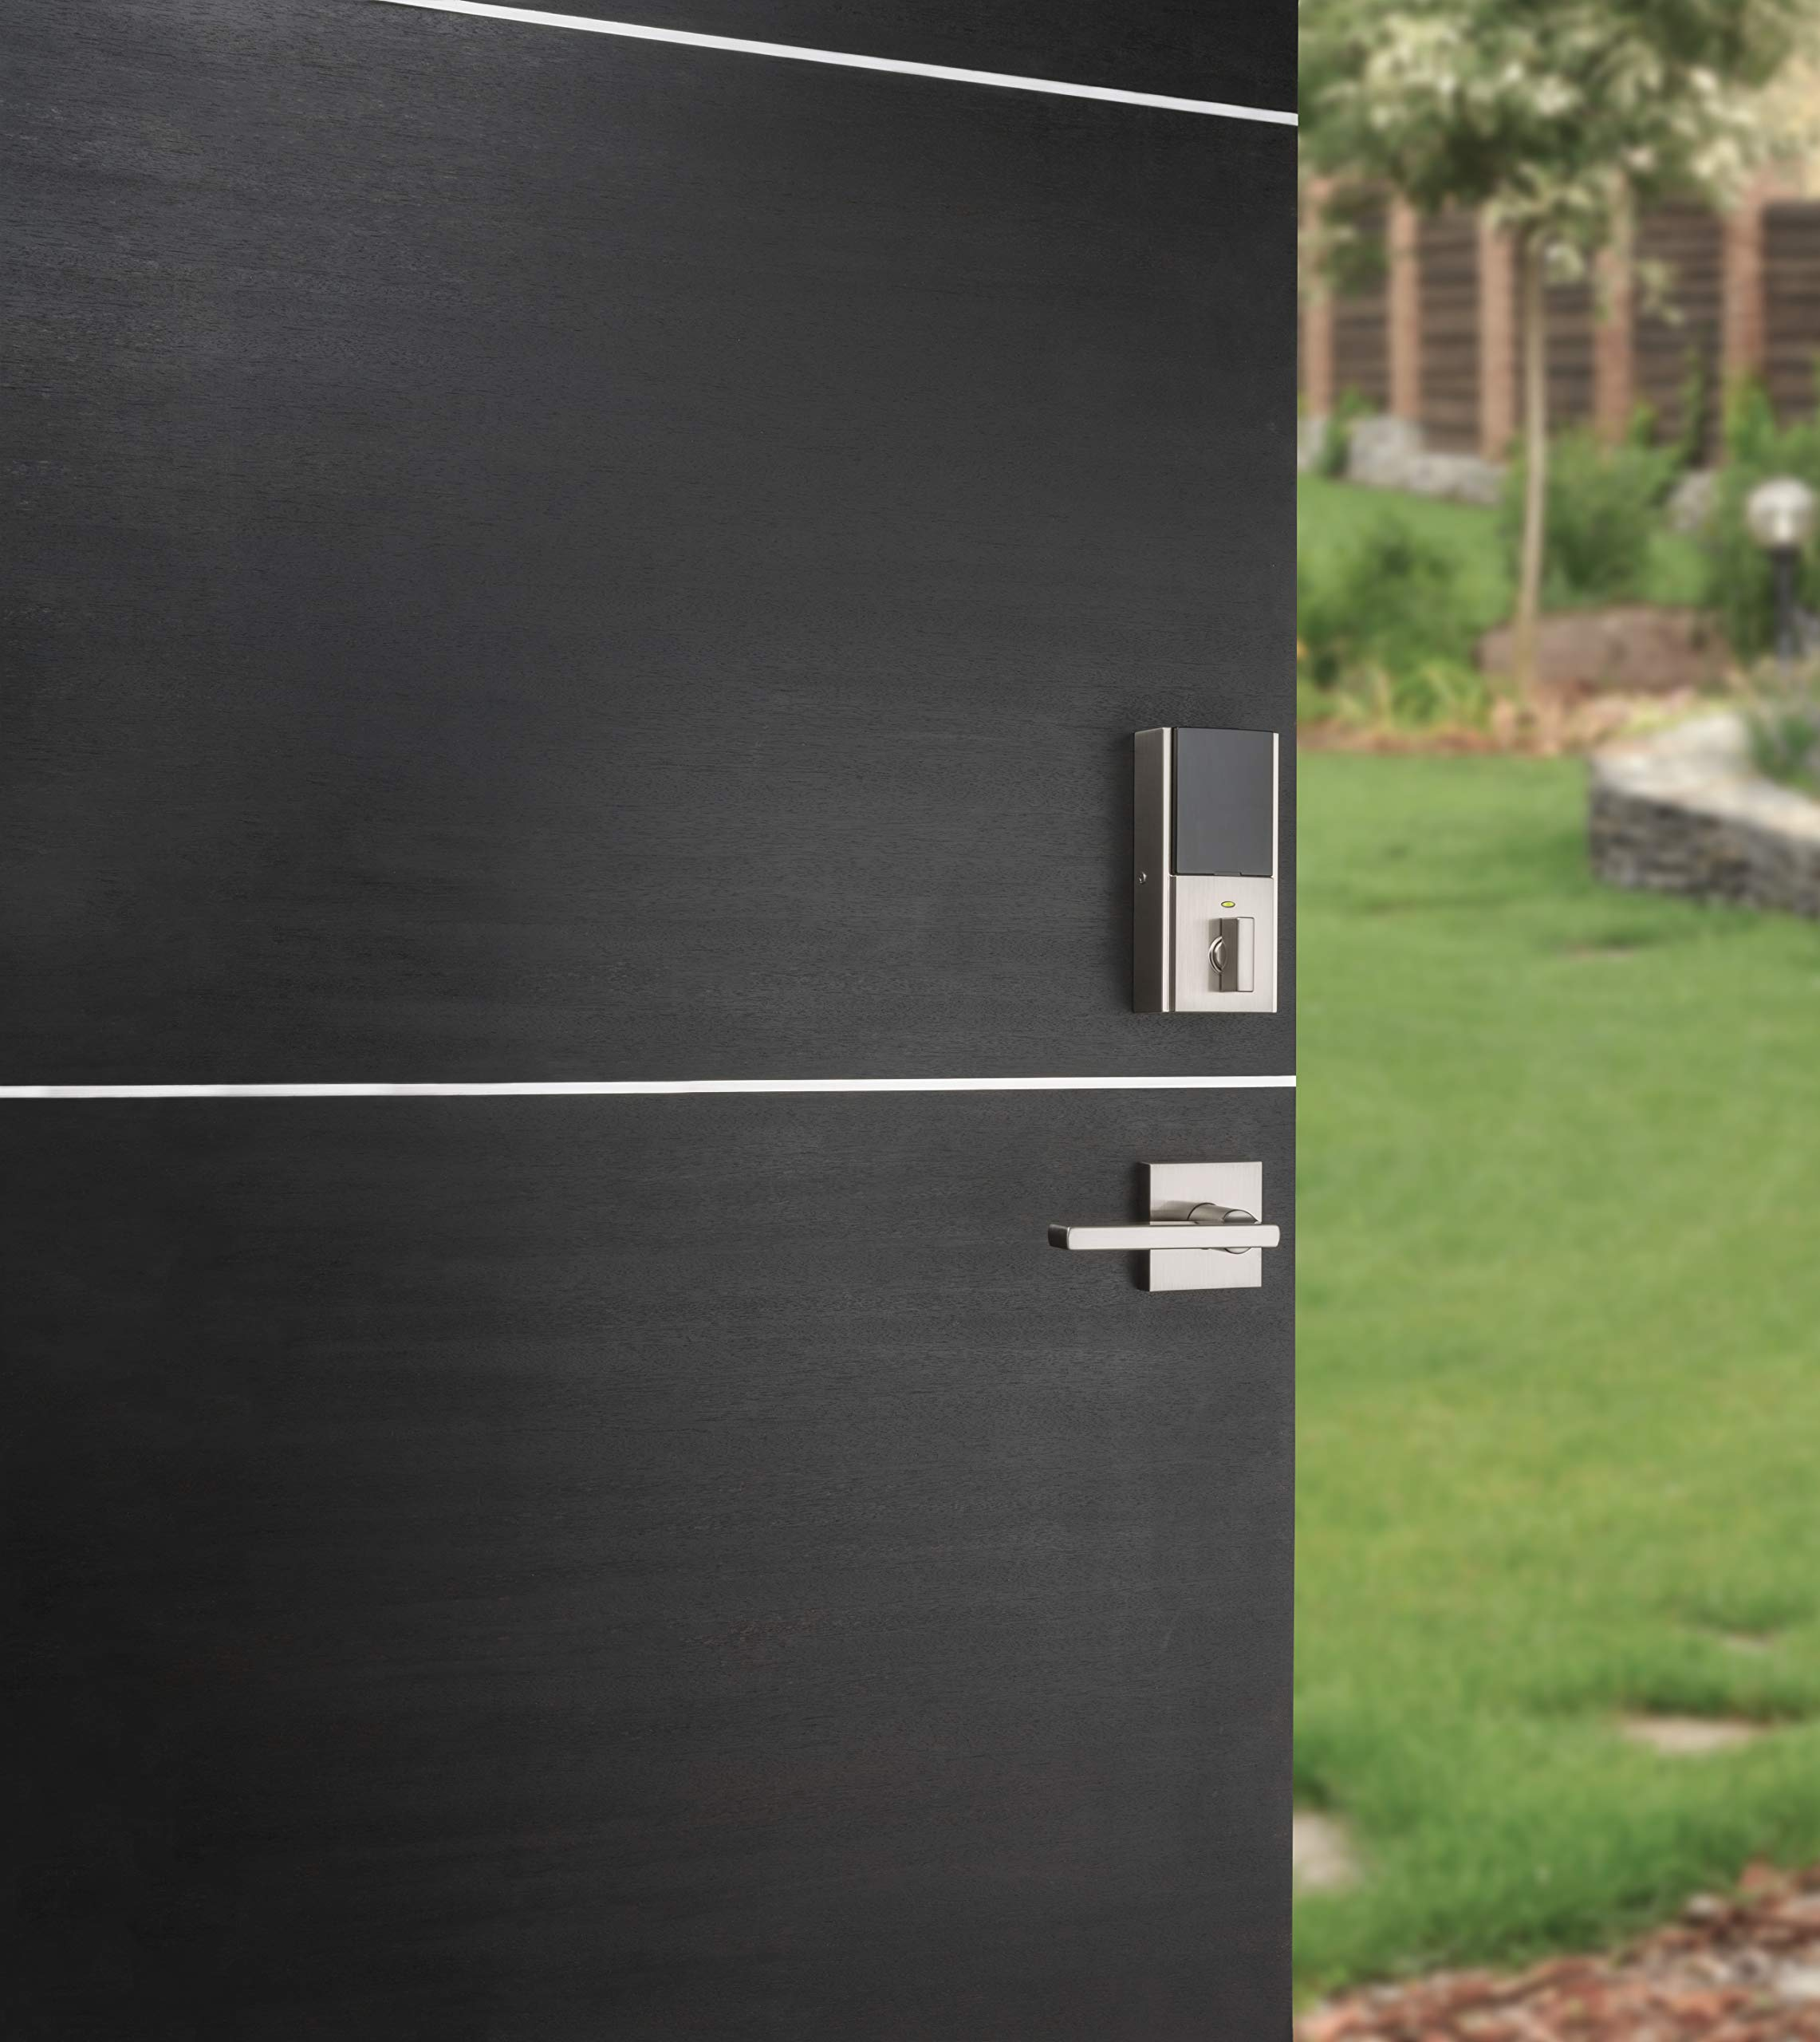 Kwikset 99250-206 Kevo 2nd Gen Contemporary Square Single Cylinder Touch-to-Open Bluetooth Deadbolt Satin Nickel by Kwikset (Image #7)